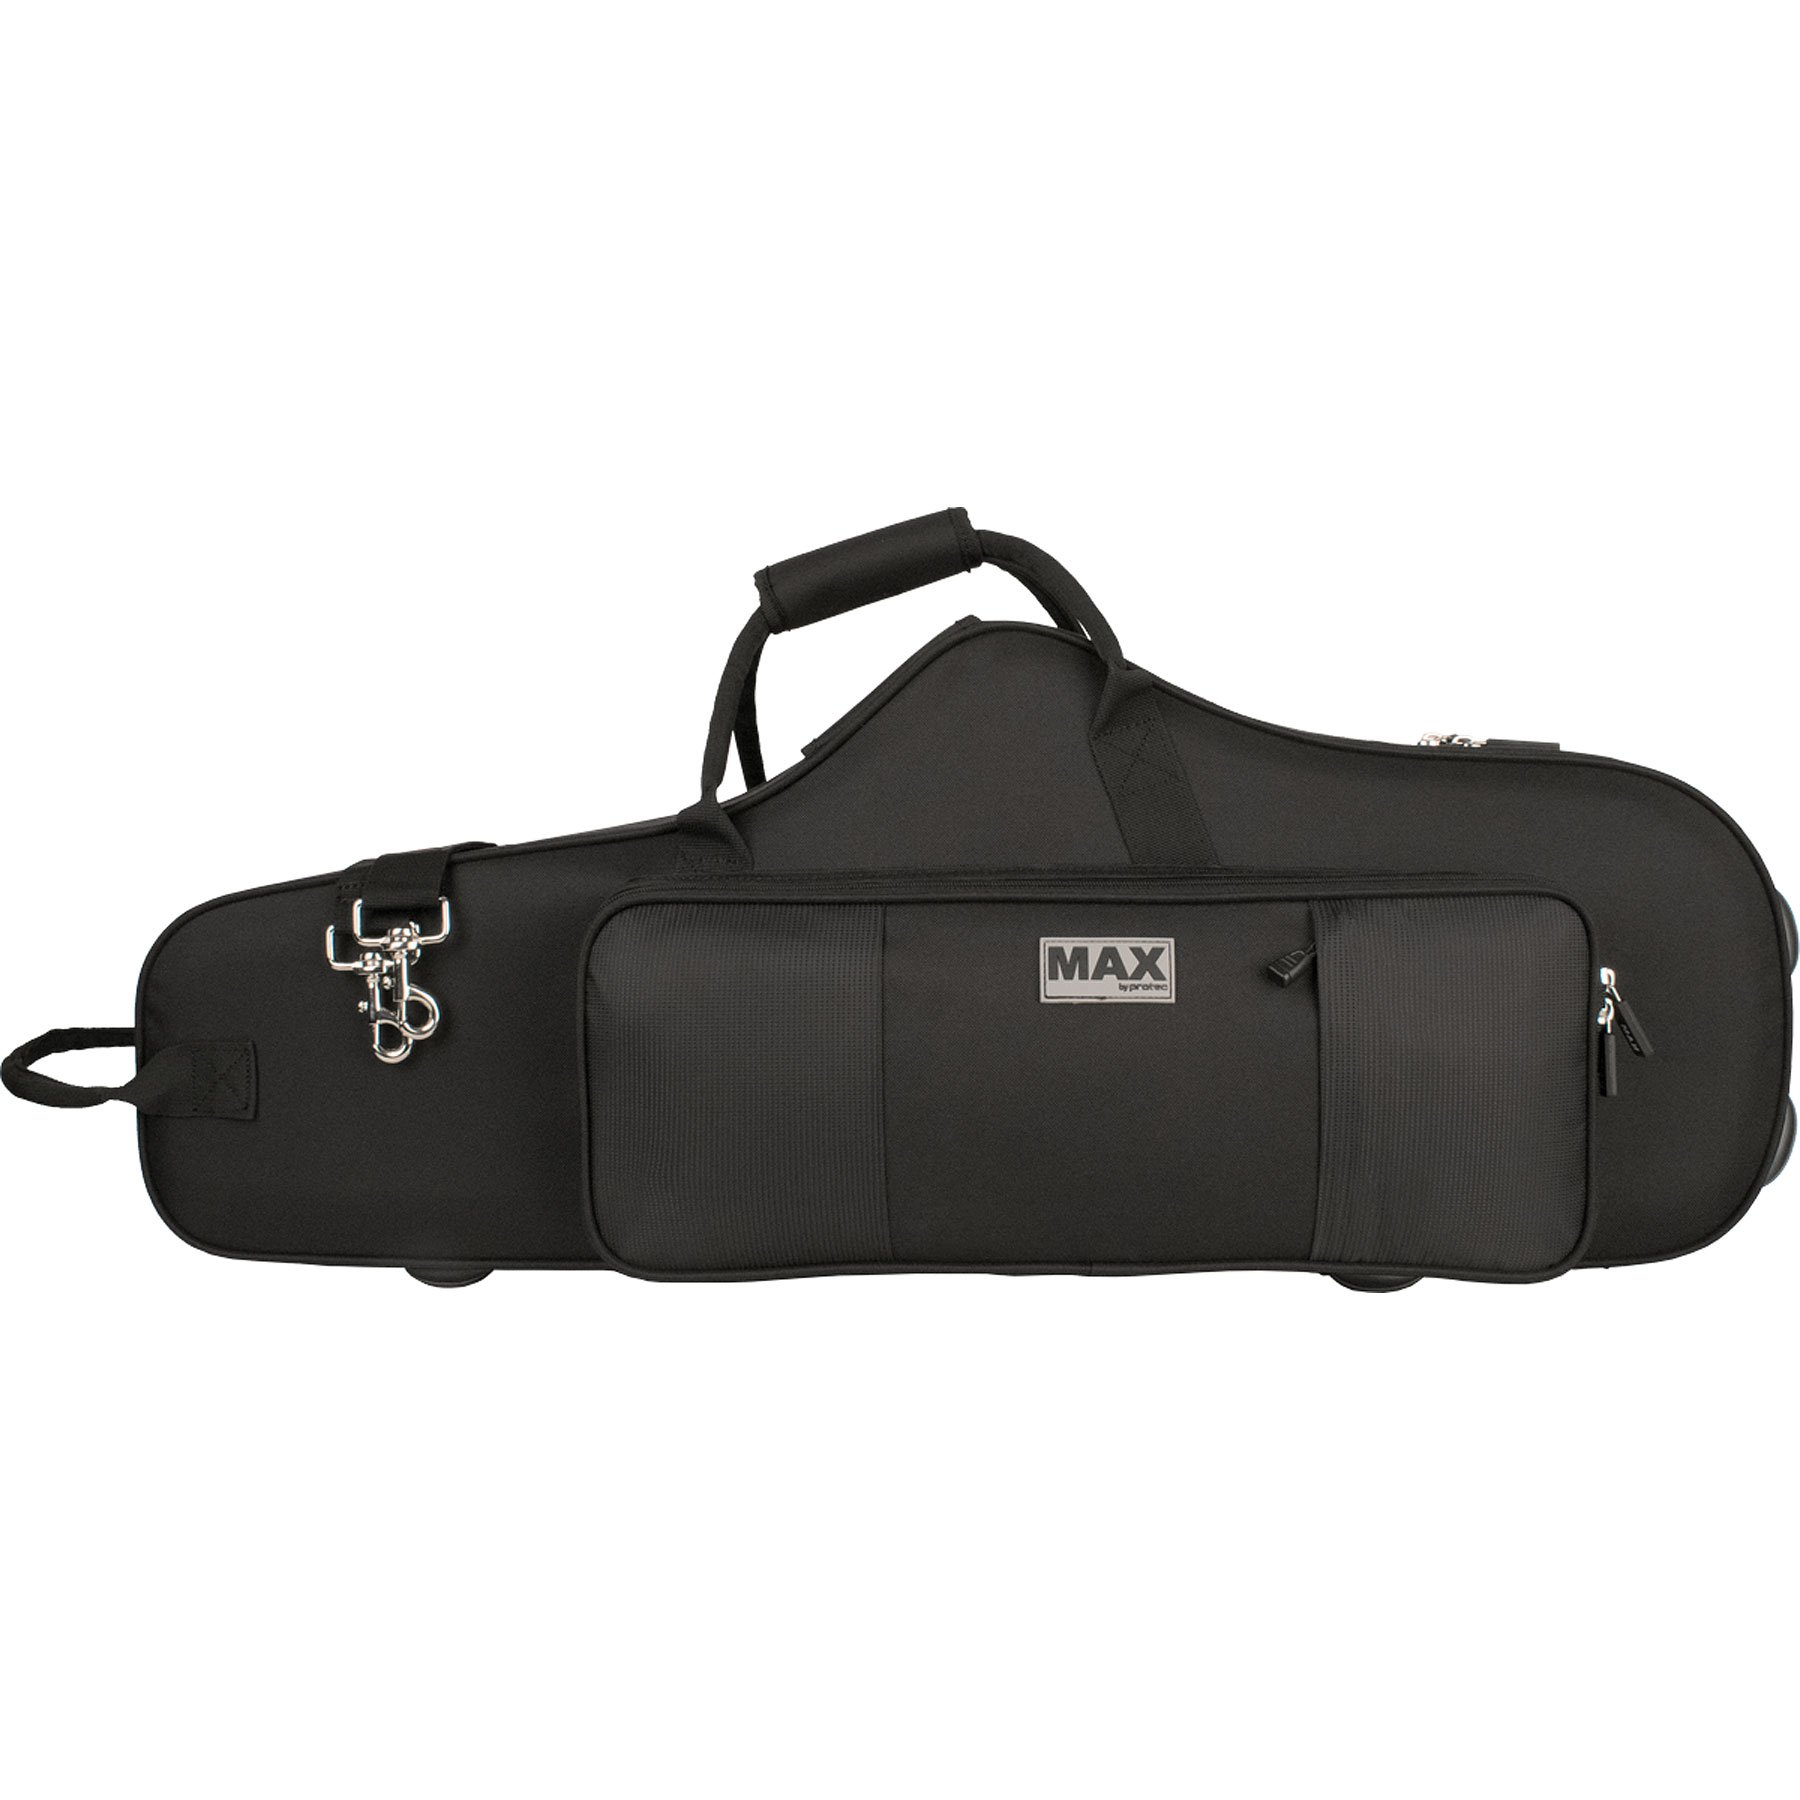 Protec MX305CT Tenor Saxophone Contoured MAX Case, Black